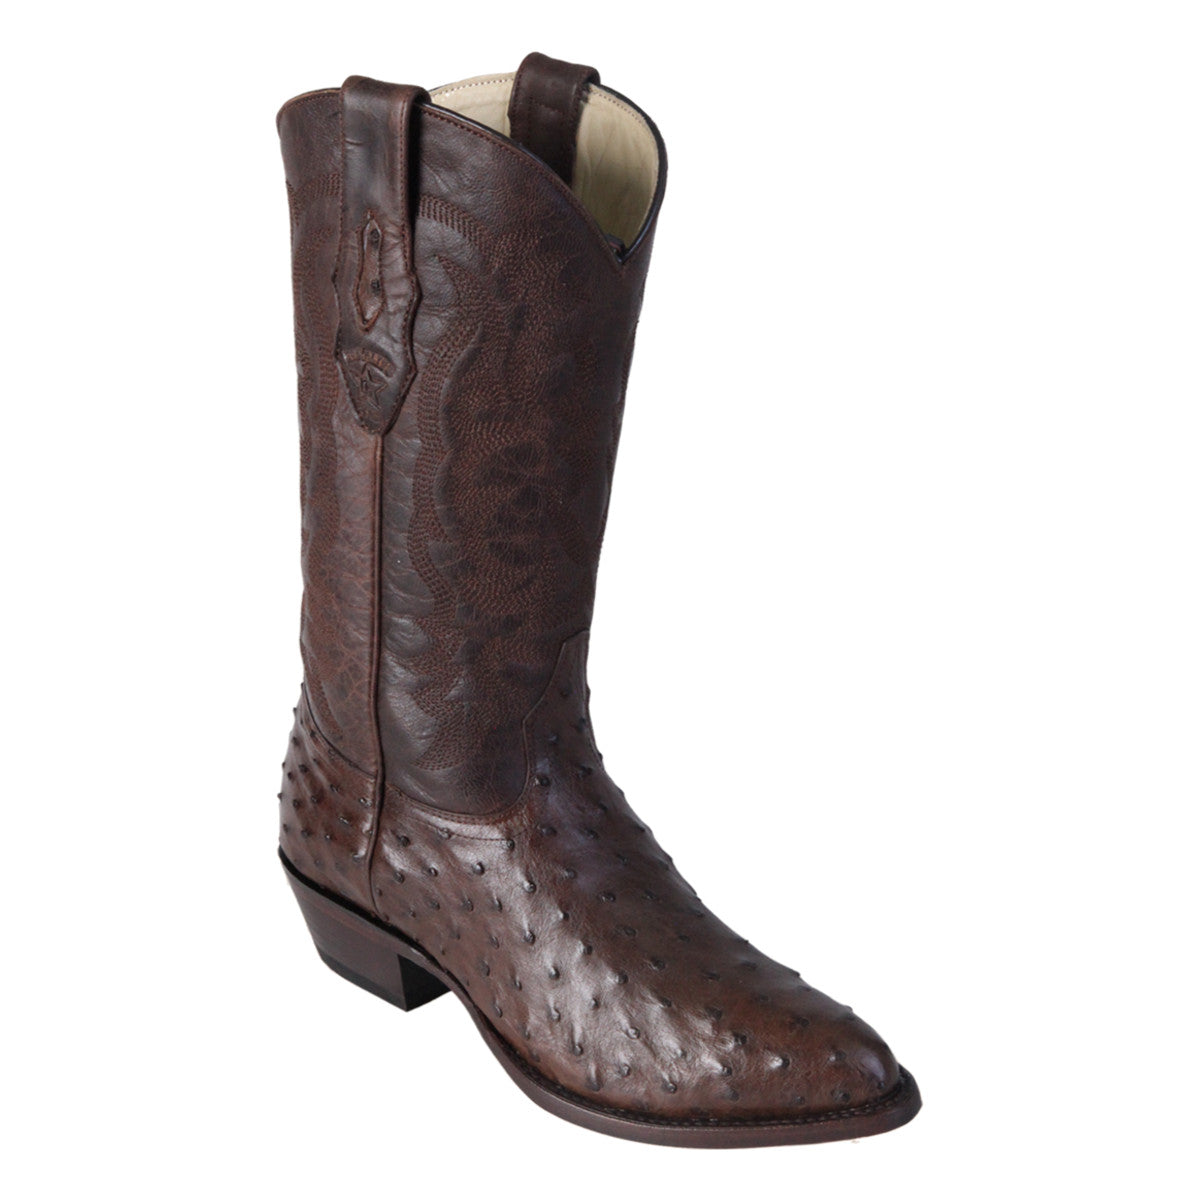 Los Altos Boots Medium R-Toe Ostrich